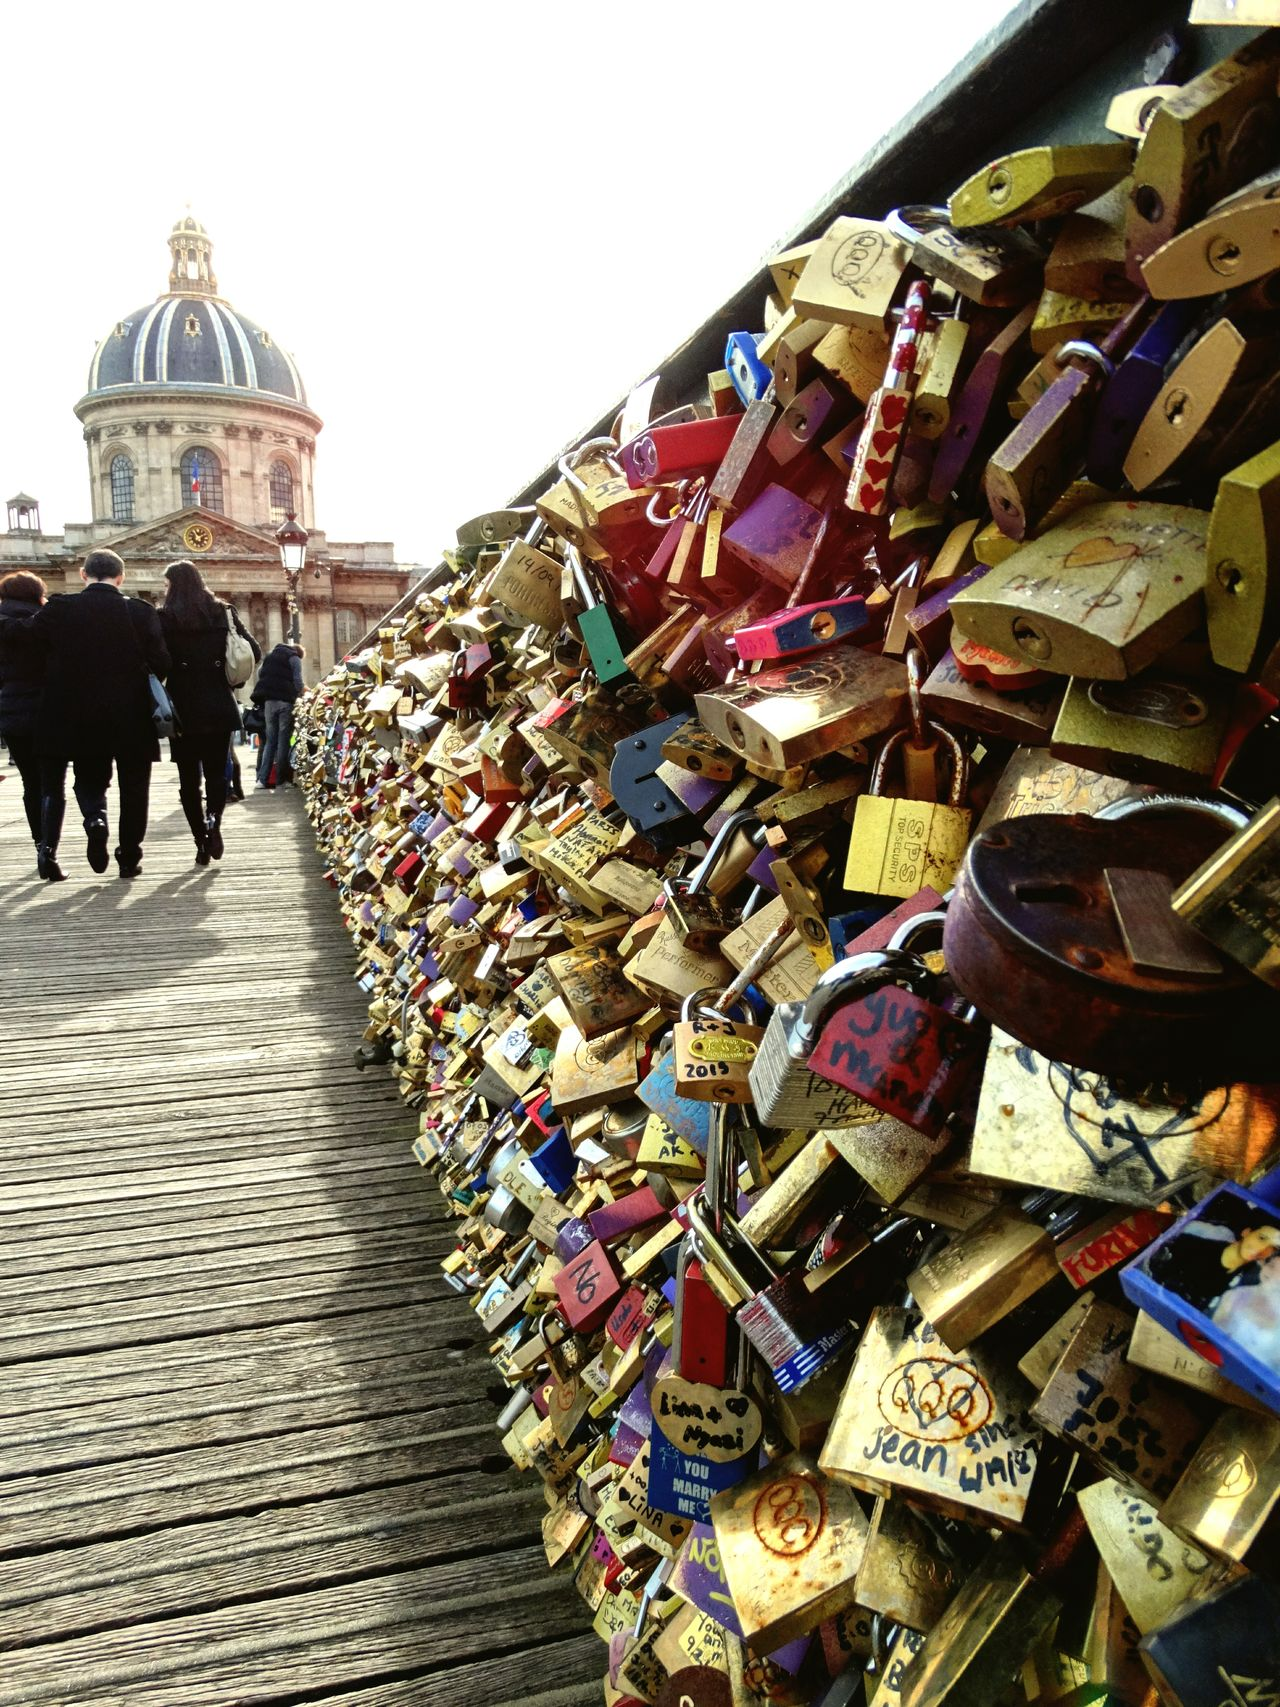 Abundance Large Group Of Objects Padlock Outdoors Lock Day Love Lock Architecture City Sky Riverbank Paris ❤ Pont Des Arts Paris City Life Pont Des Arts Cadenas Architecture Cityscape